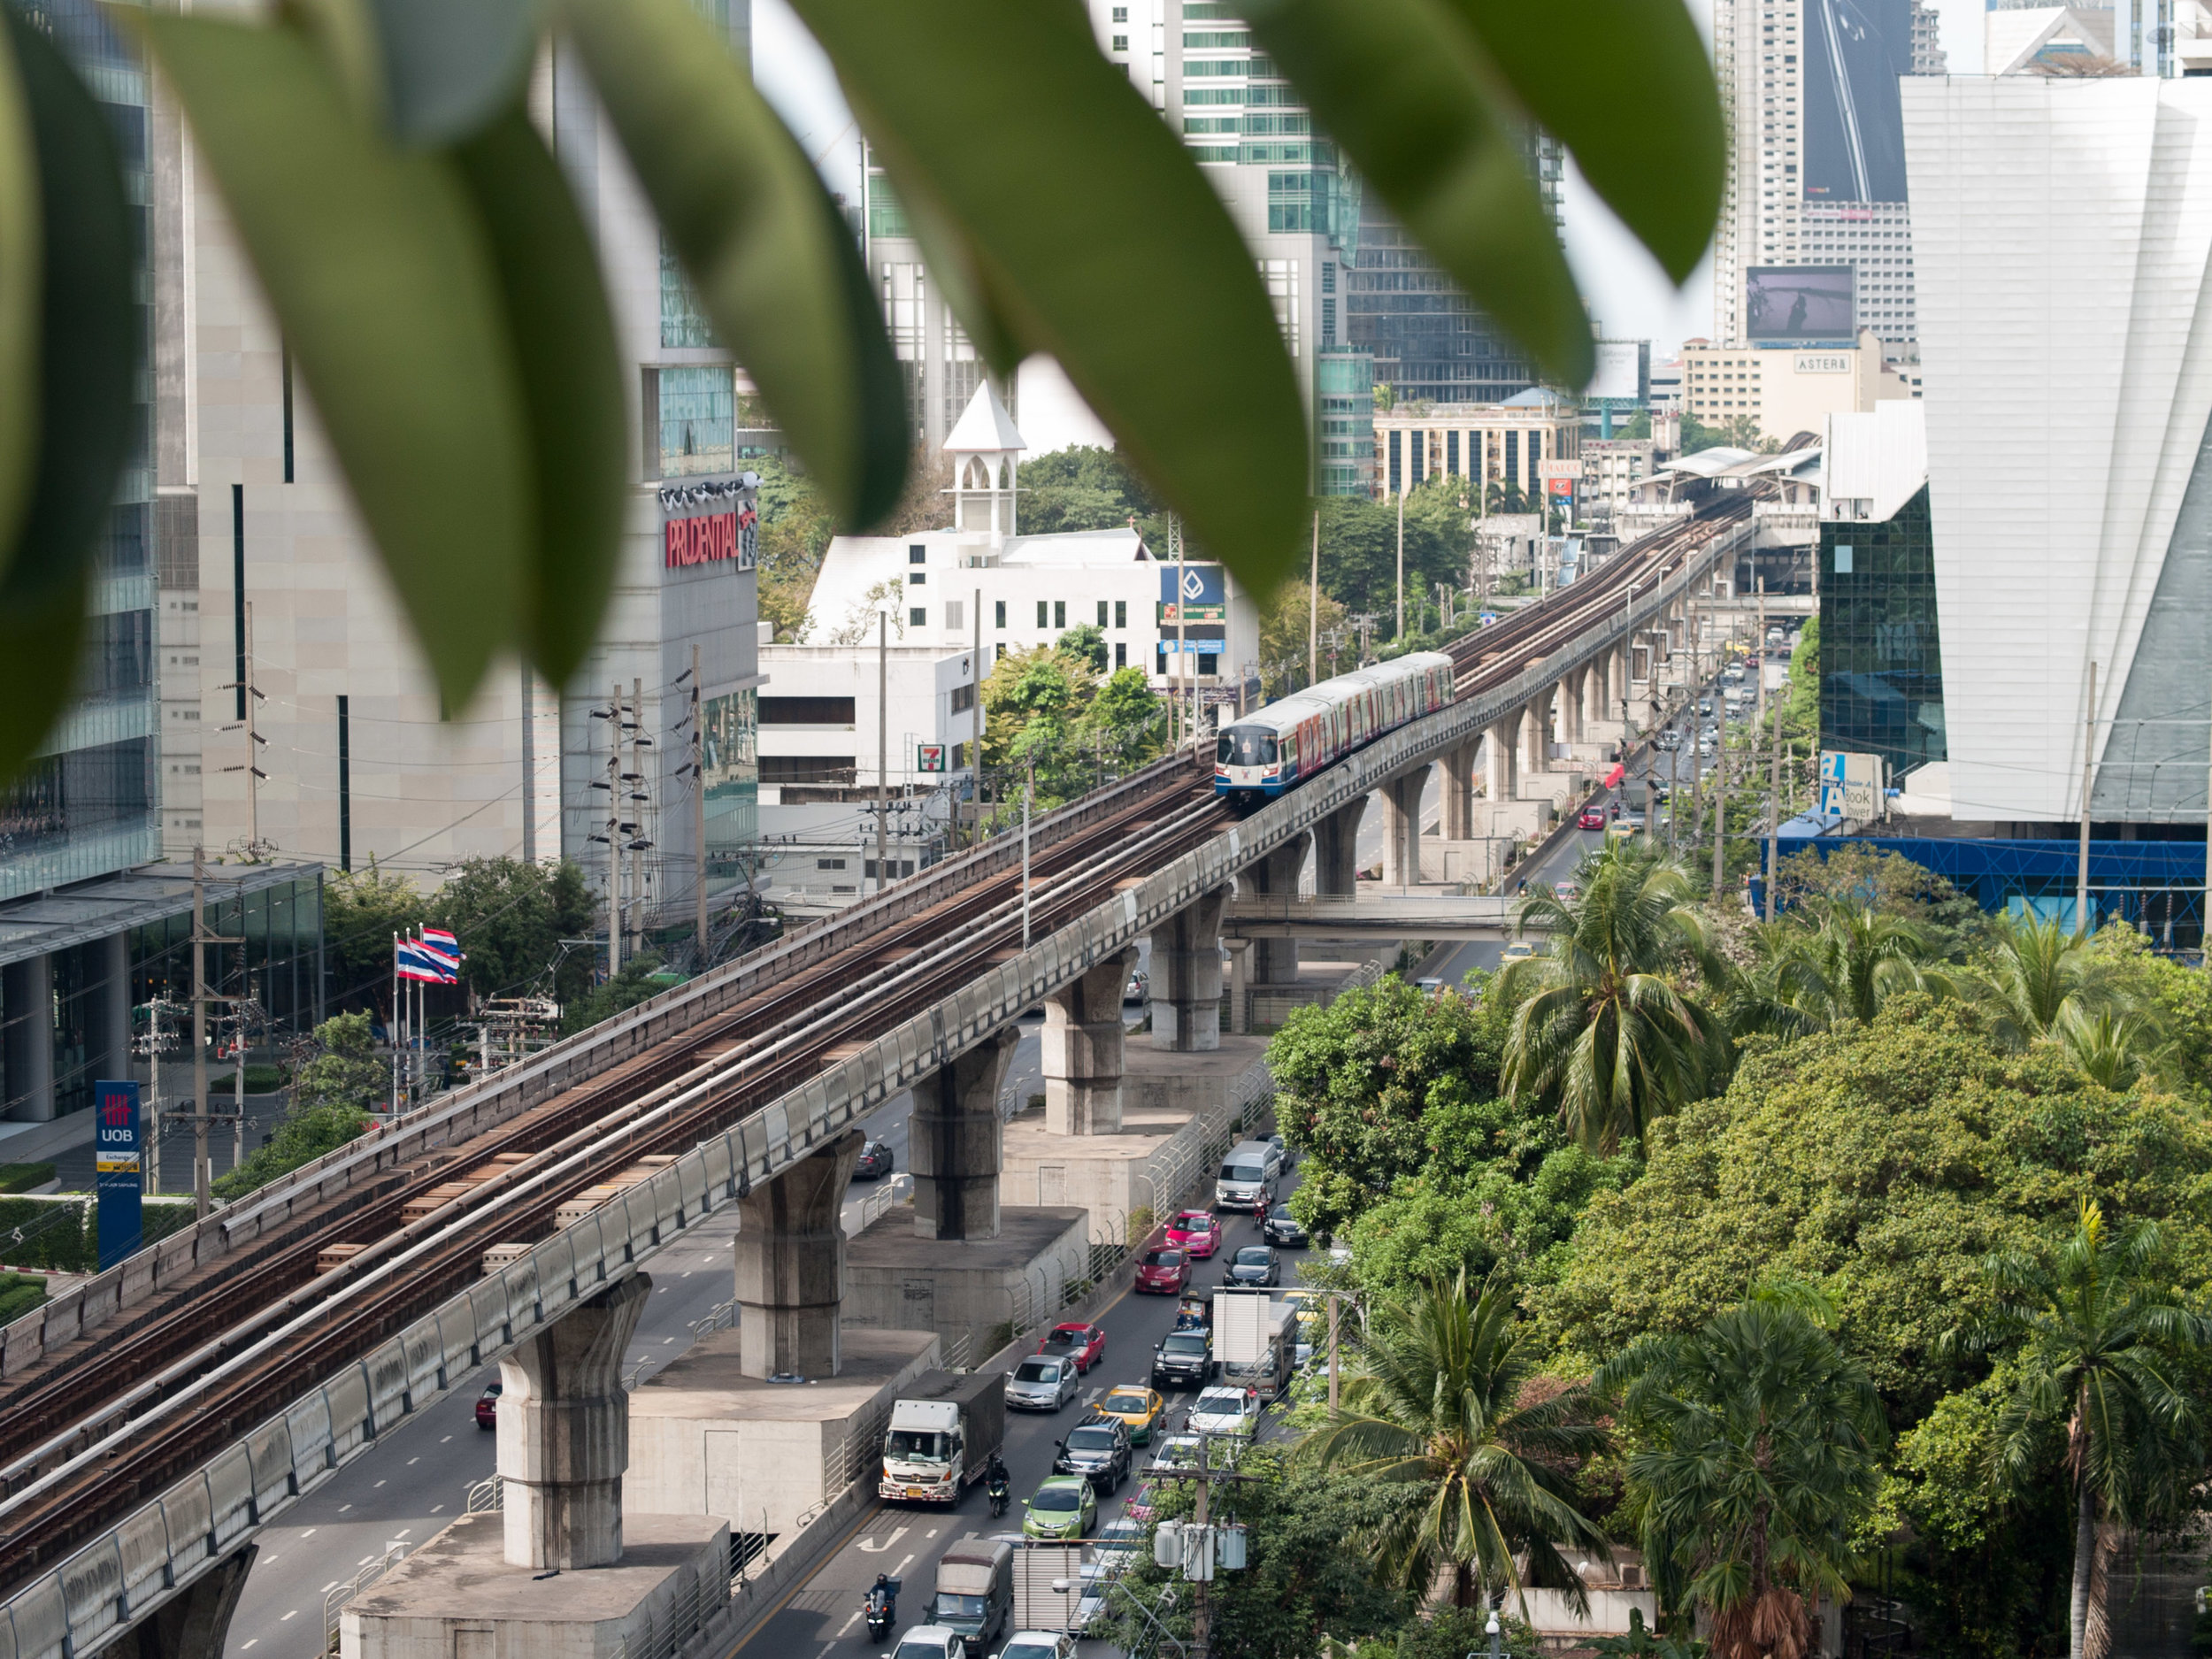 Sky Train and BKK city buzz from above